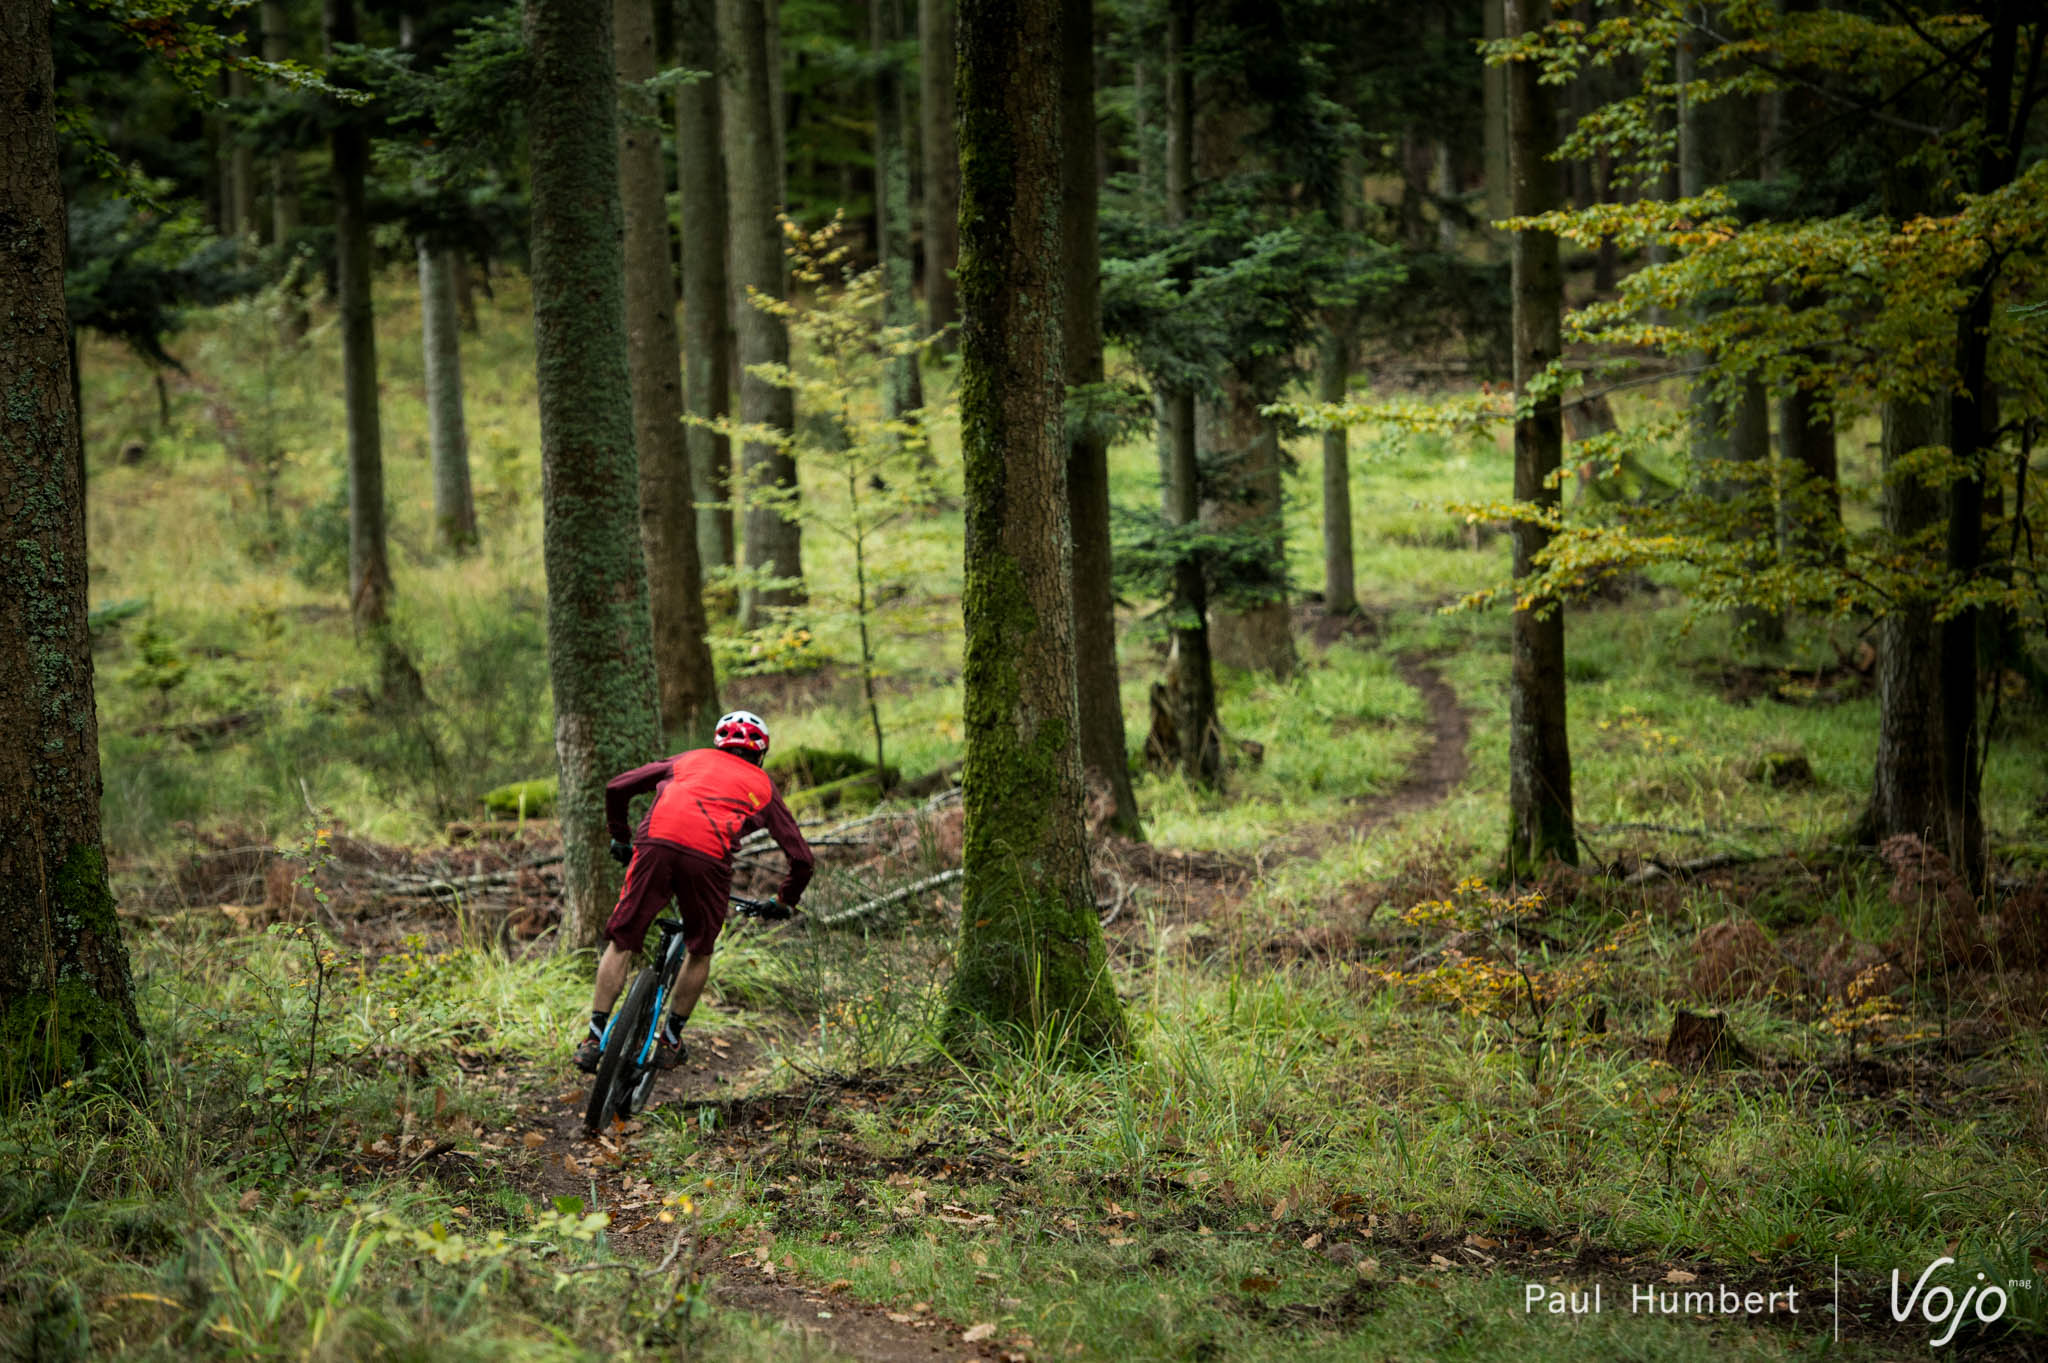 bmc-speedfox-trailcrew-02-2016-vojo-paul-humbert-2